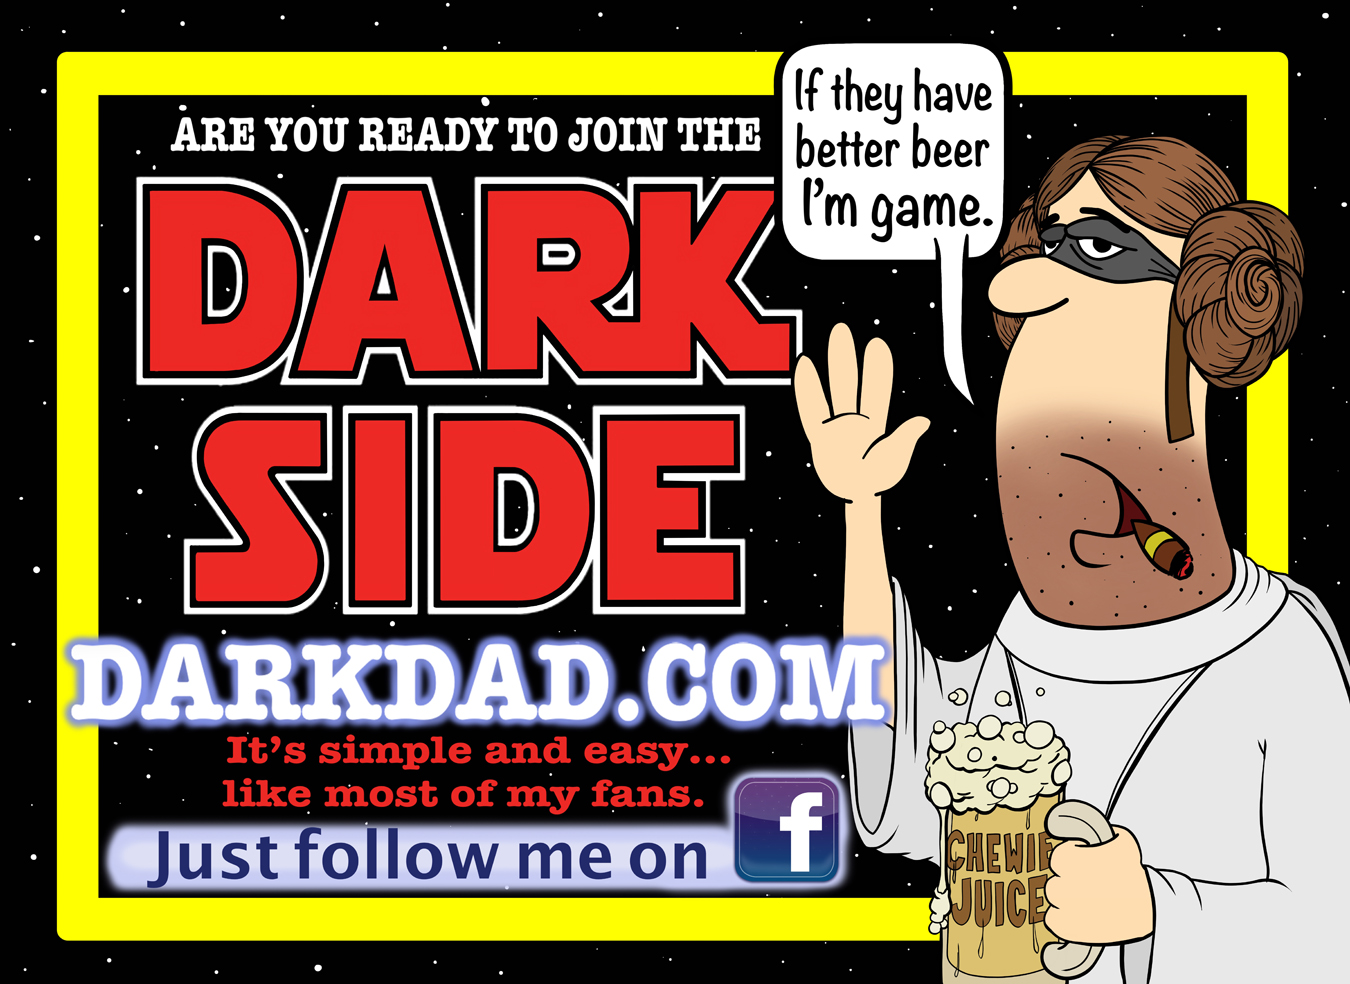 Join The Darkside sm